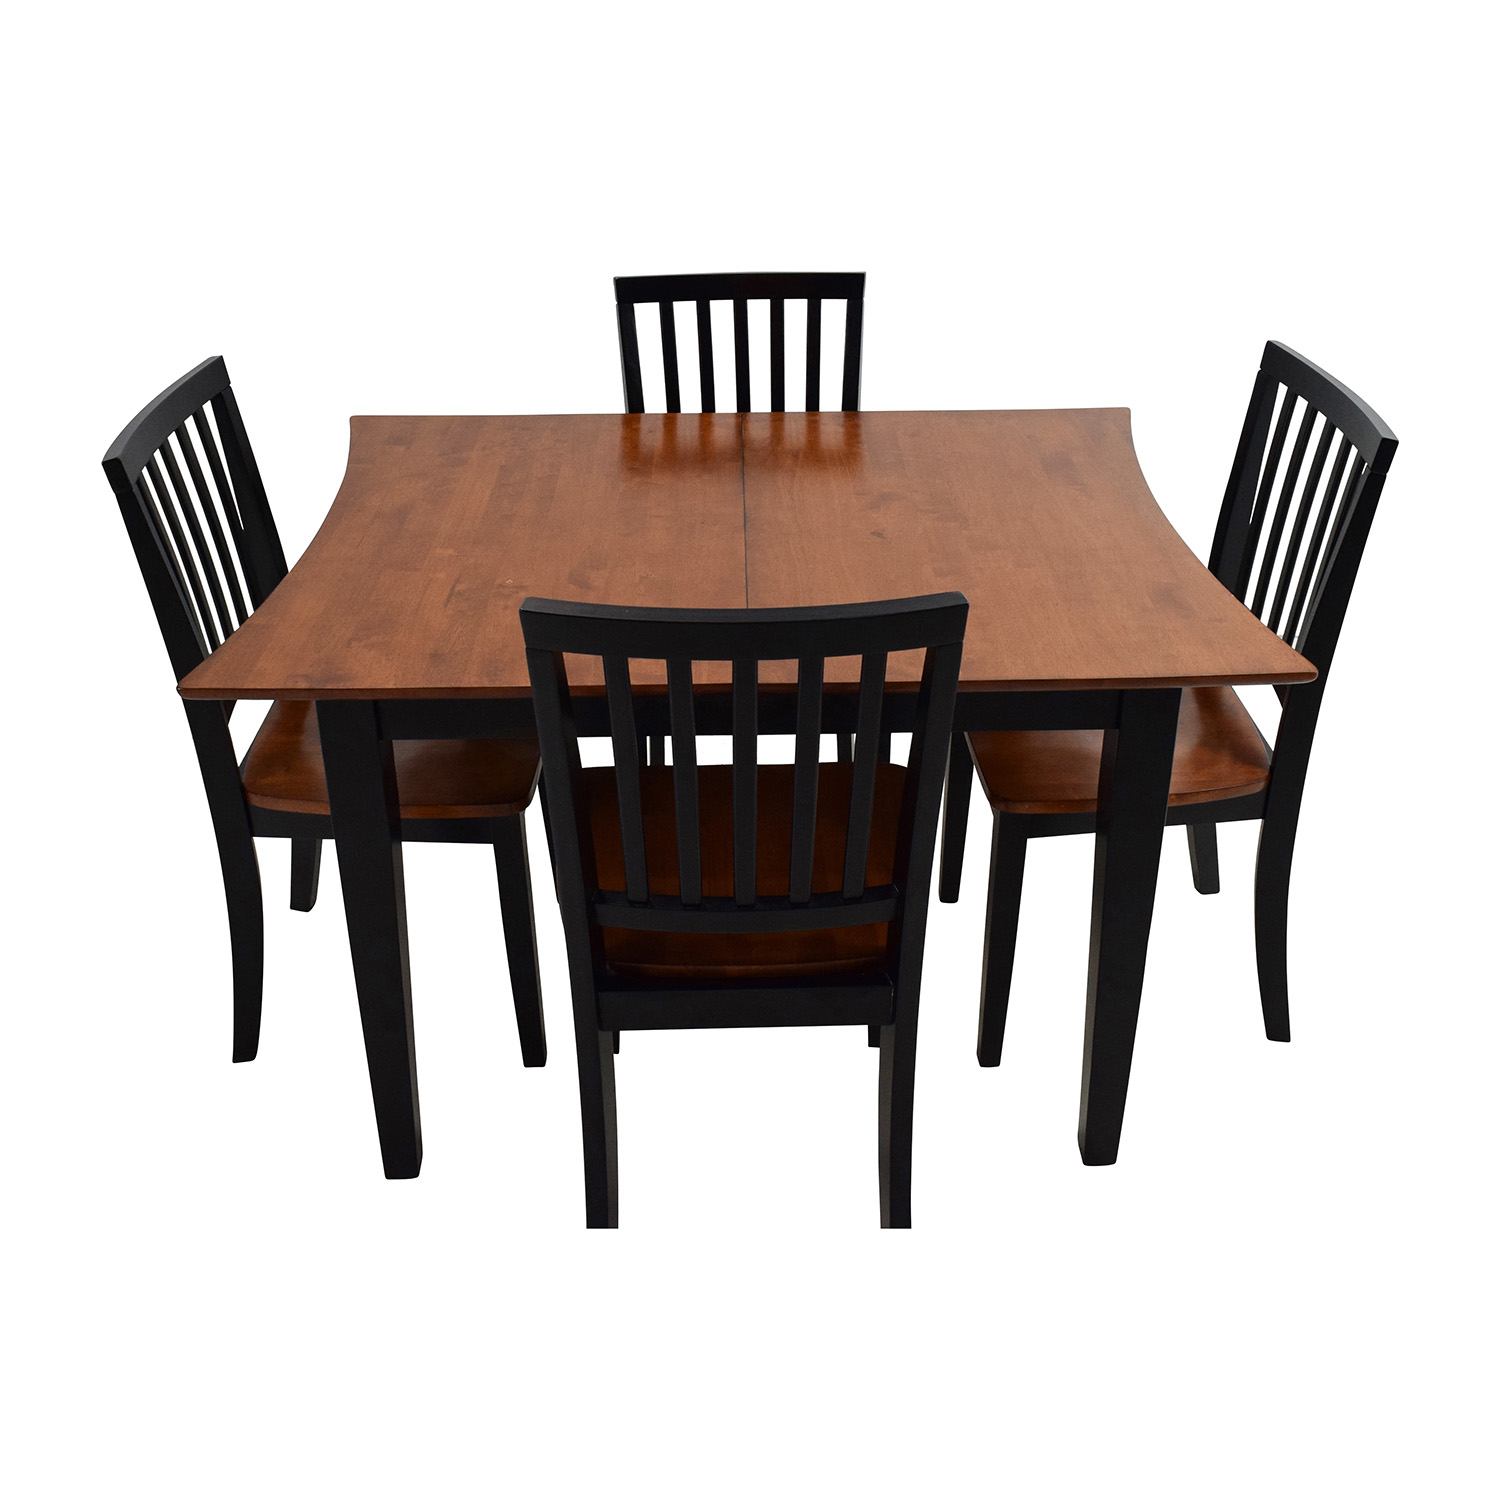 New dining room tables bobs light of dining room for Cheap furniture